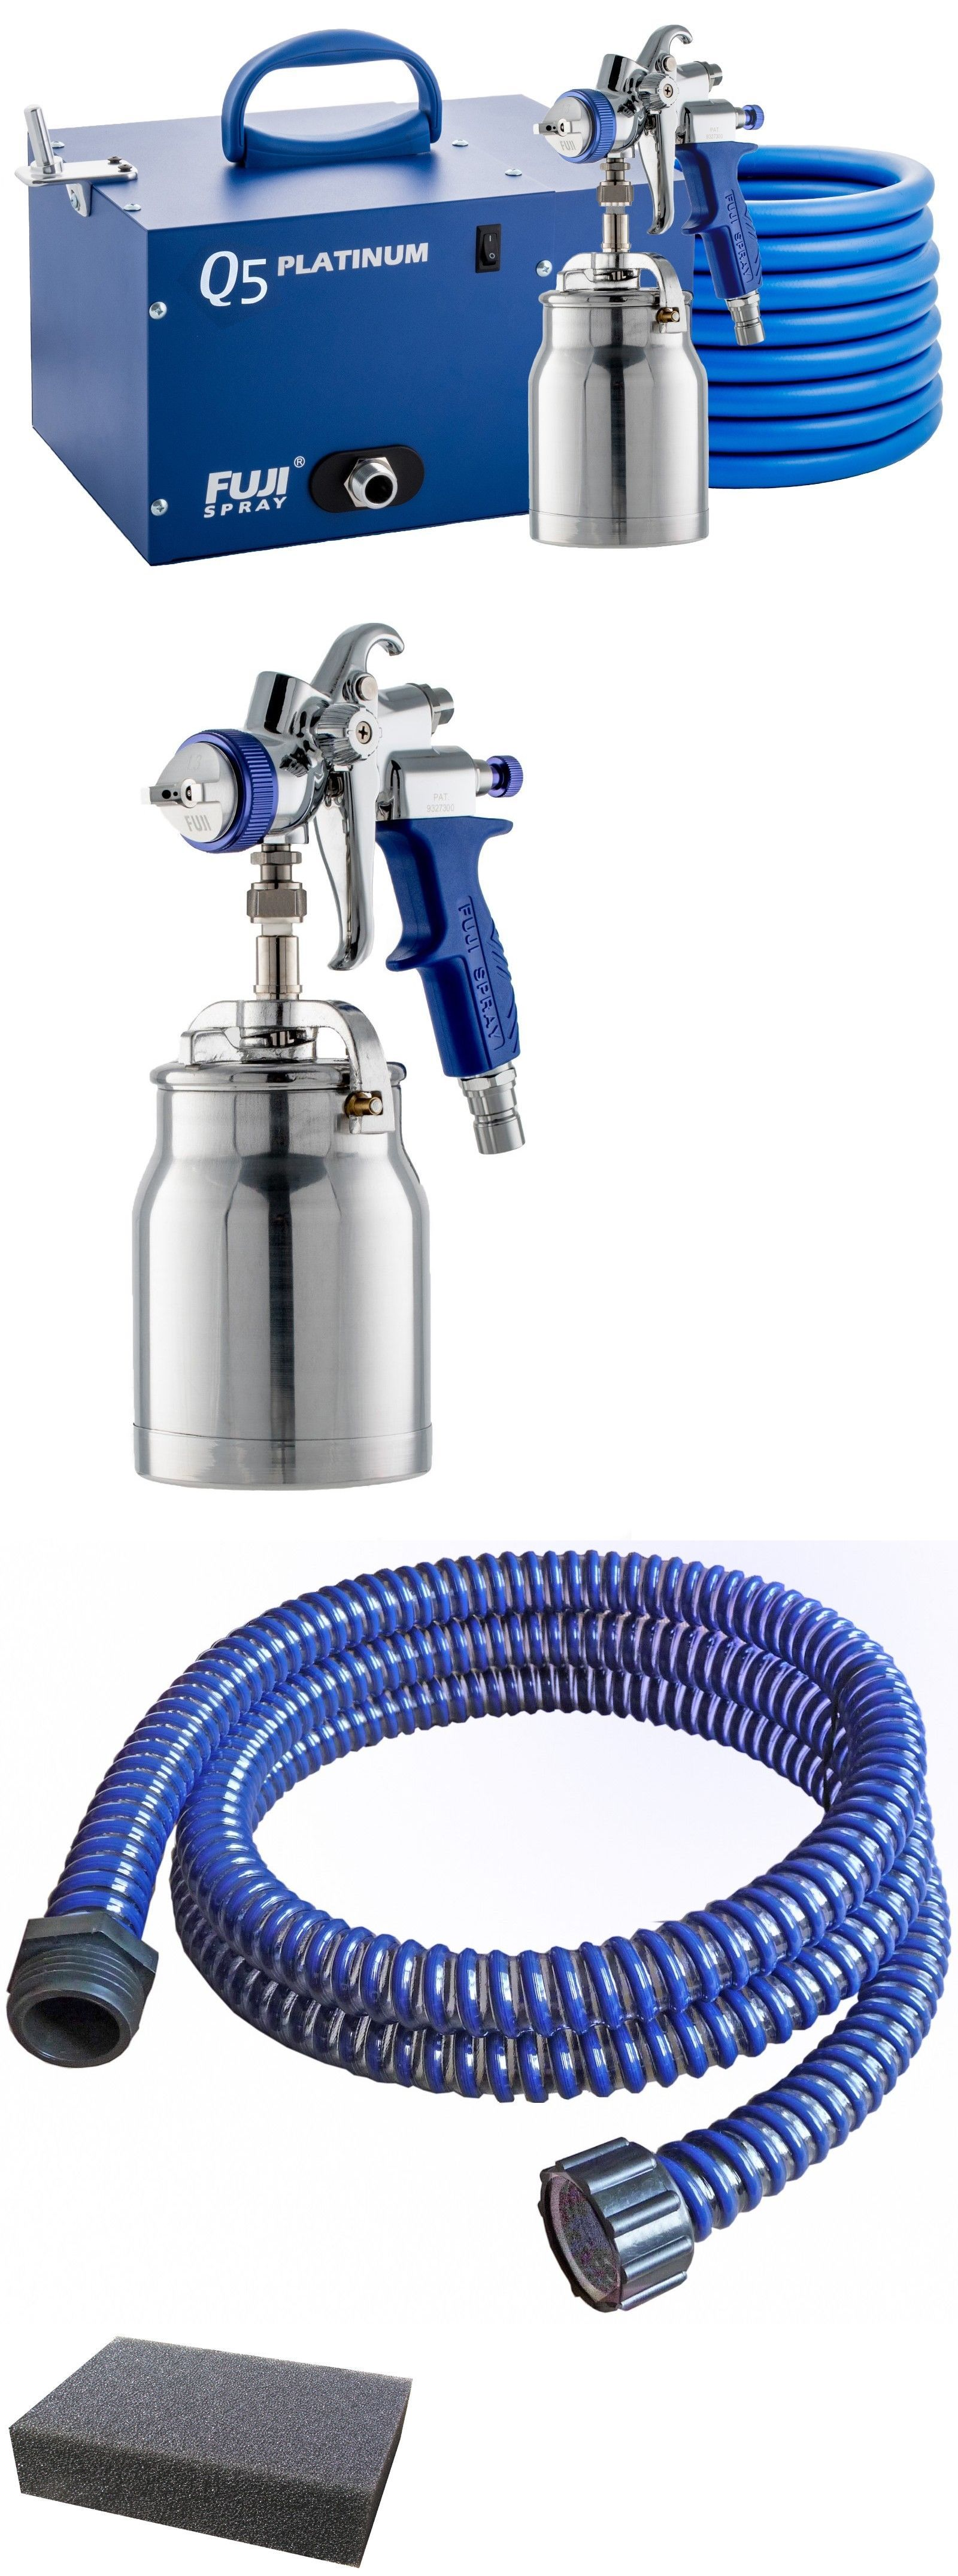 Paint Sprayers 79702 3005 T70 Fuji Spray Q5 Platinum Hvlp System With Free 5 For 5 Pack Buy It Now Only 1349 On Ebay Pa Paint Sprayer Spray Sprayers